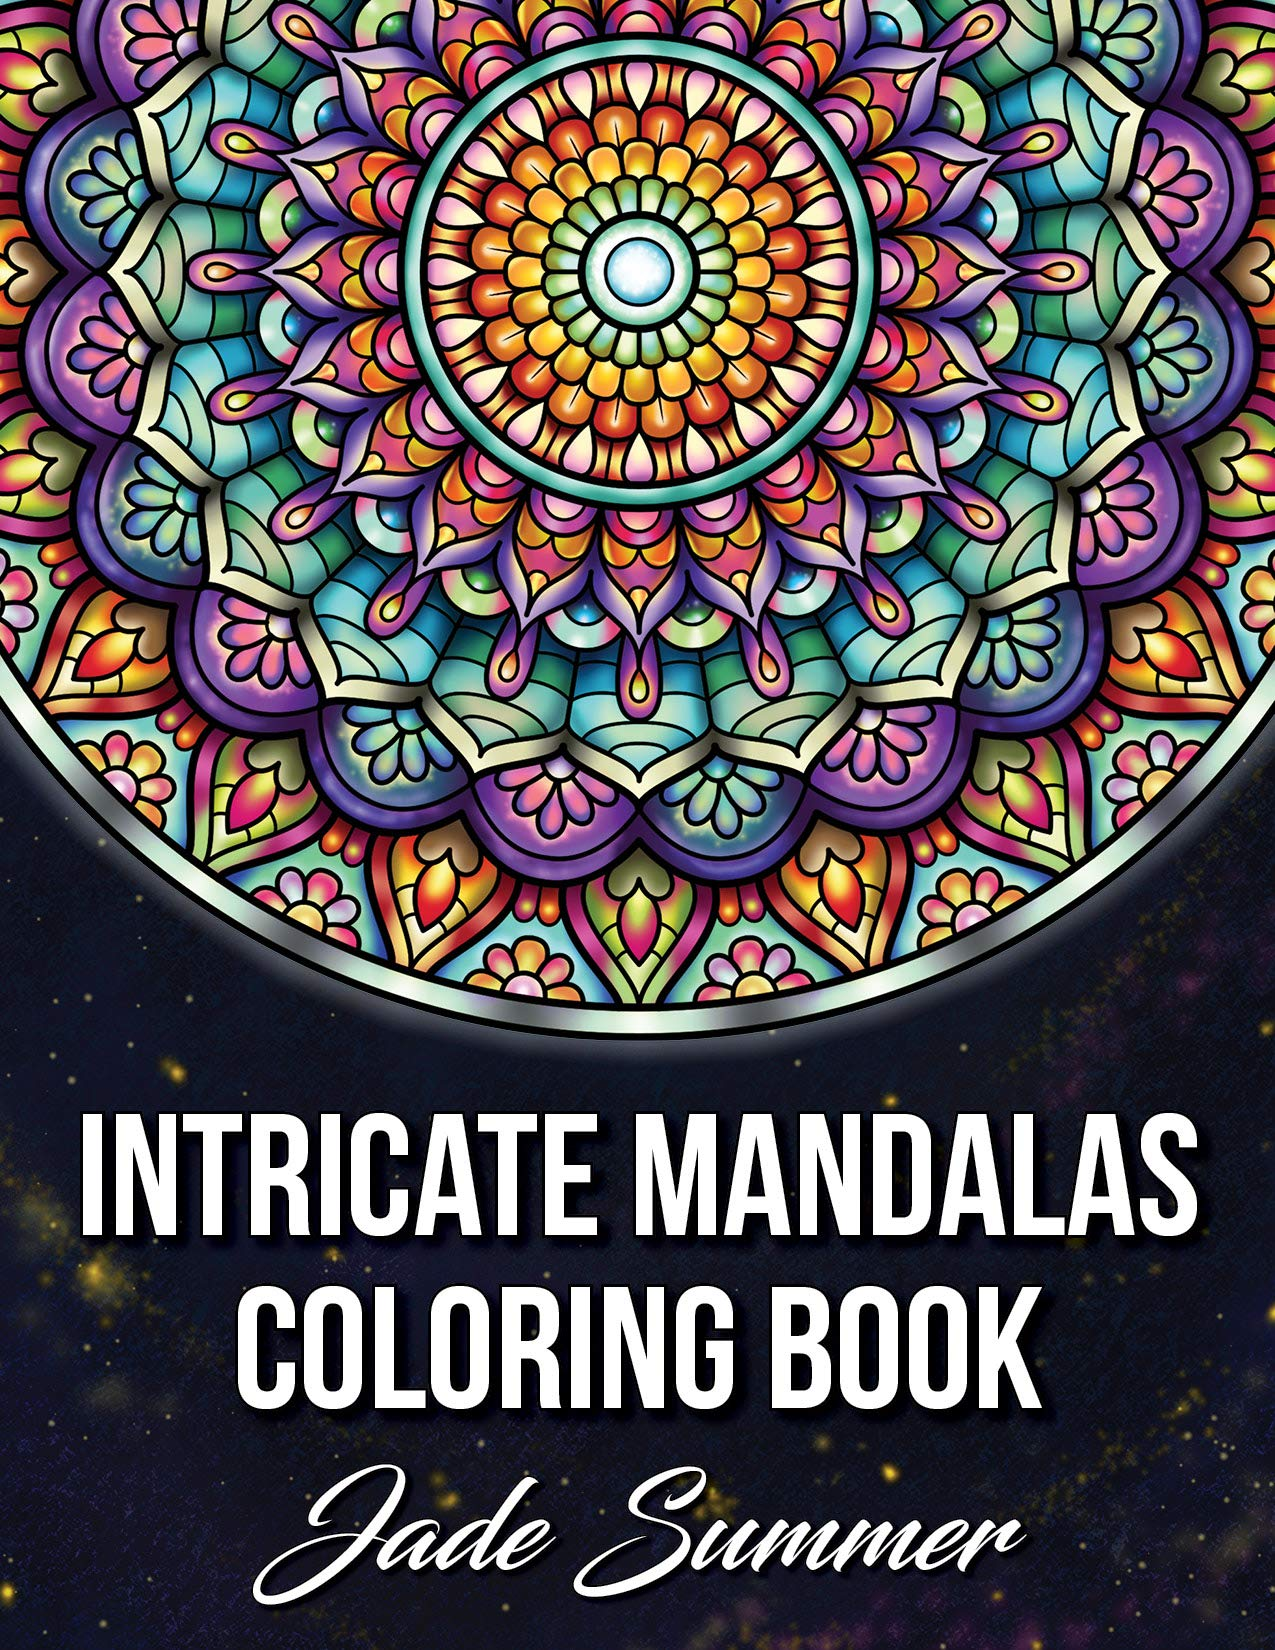 Intricate Mandalas Coloring Detailed Relaxation product image